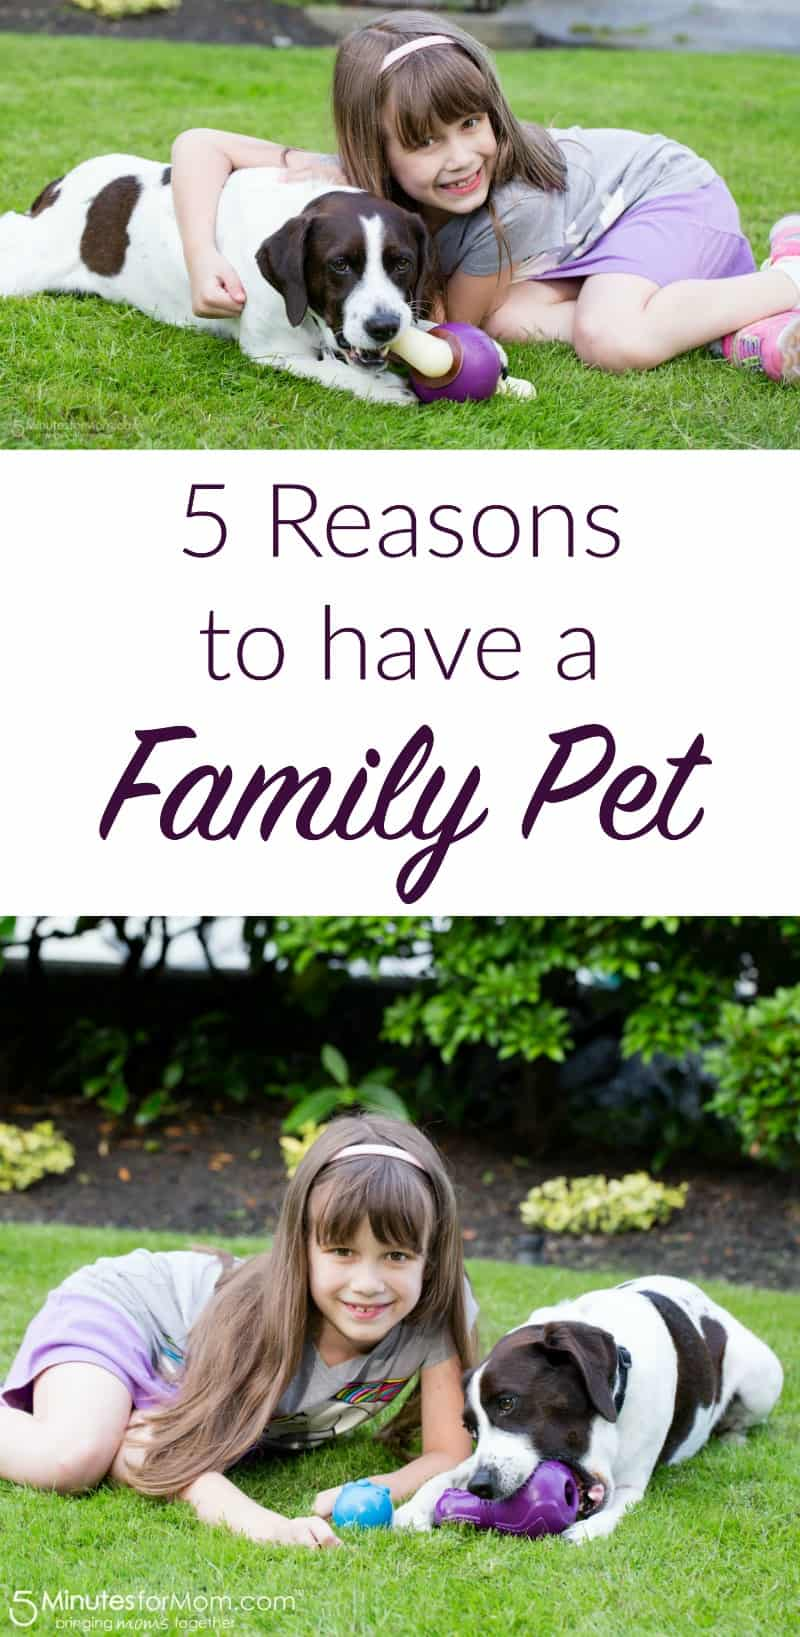 5 Reasons to Have a Family Pet